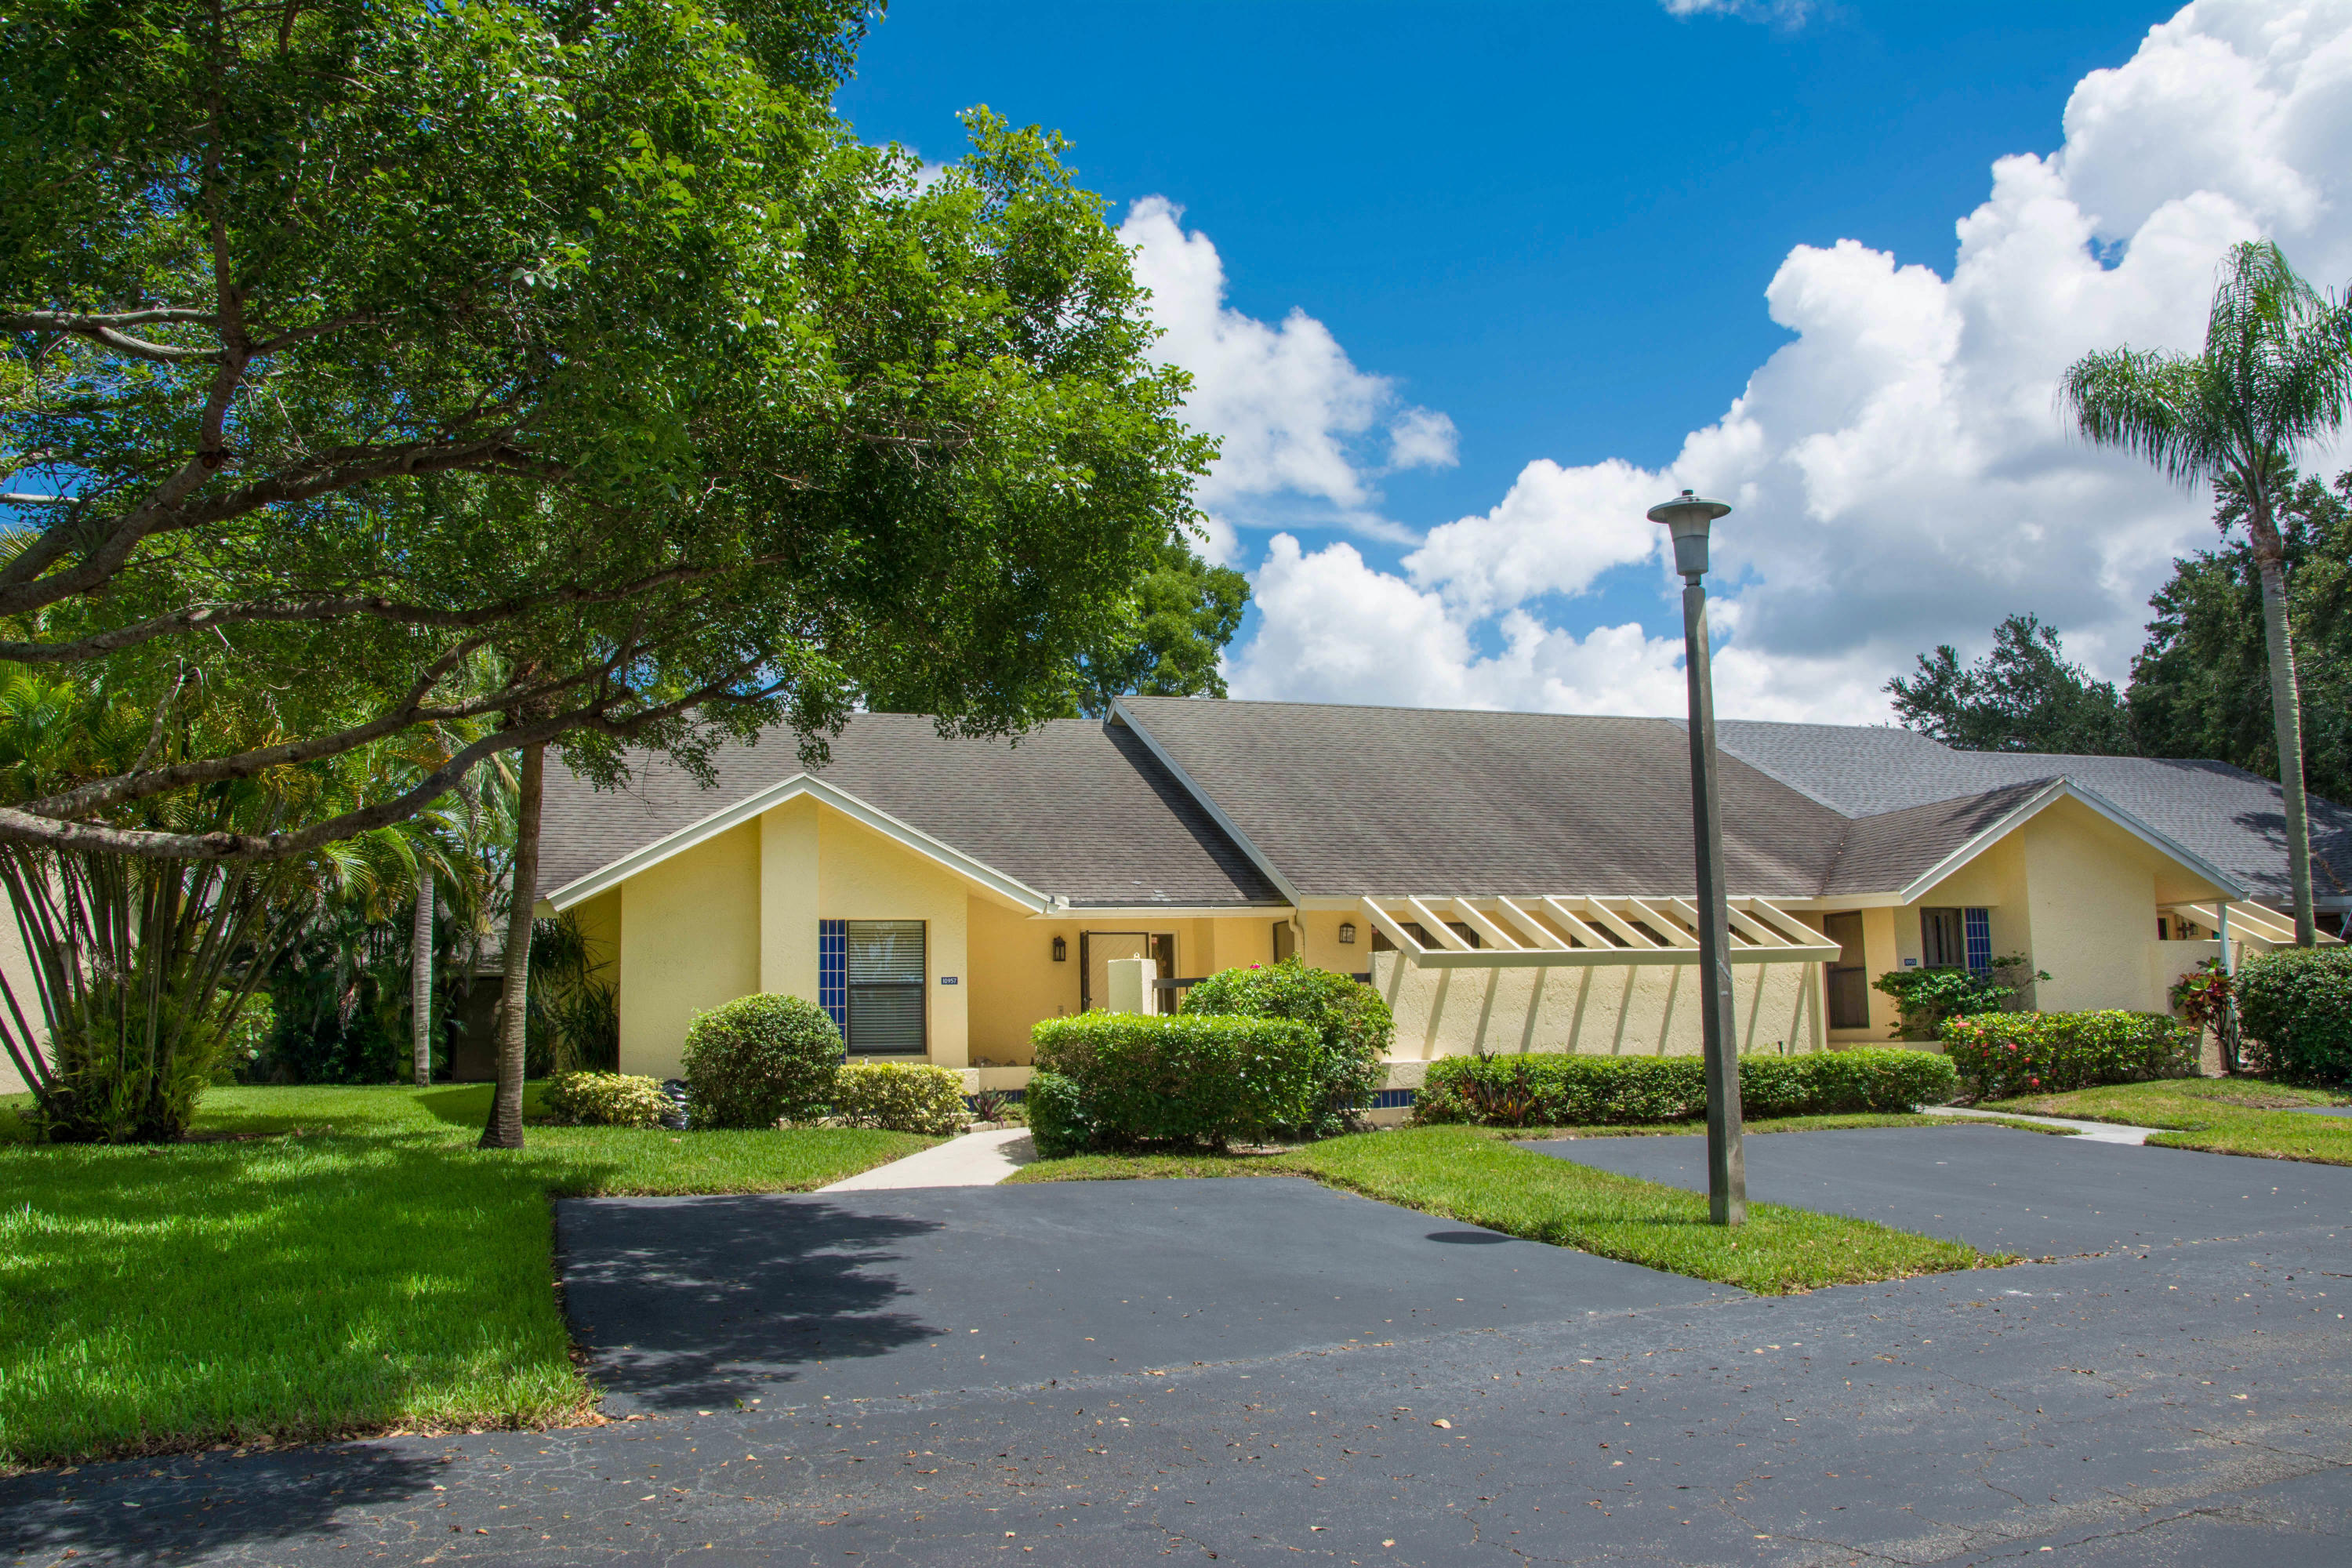 Home for sale in Waterberry Boca Raton Florida